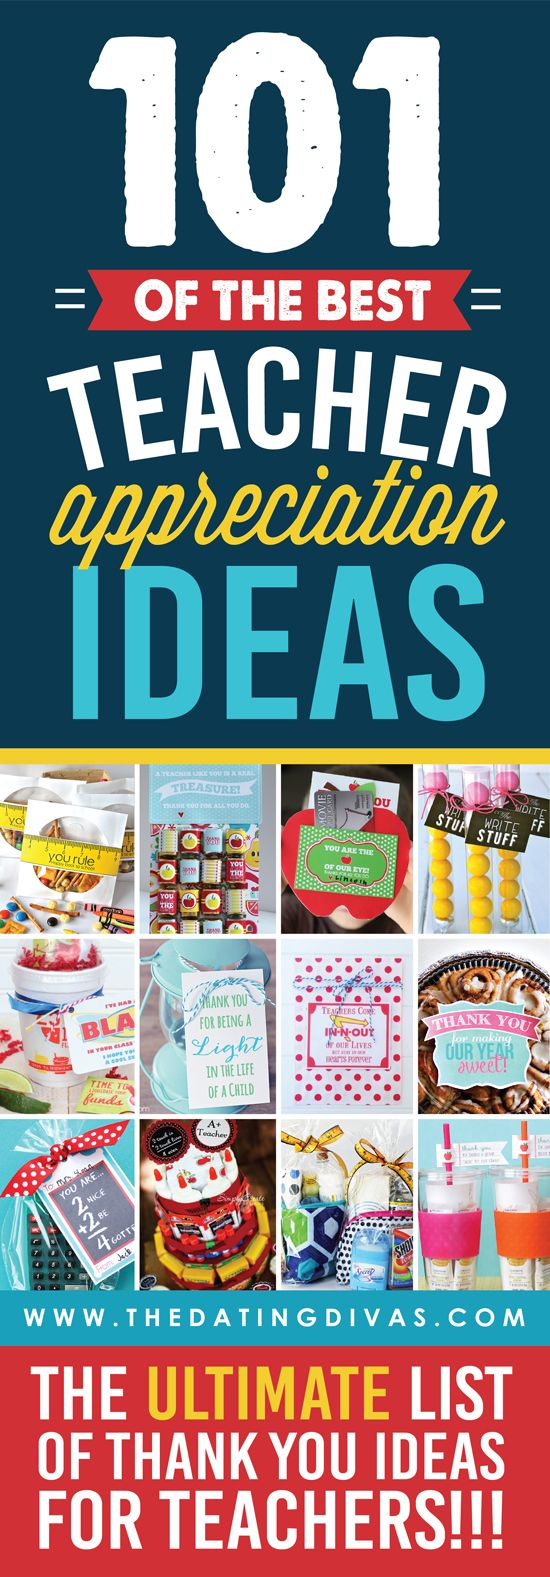 WOWZER! This is seriously the ULTIMATE list of teacher appreciation ideas! Quick and easy gift ideas, FREE printables, door decoration ideas, and SO MUCH MORE!!! www.TheDatingDivas.com